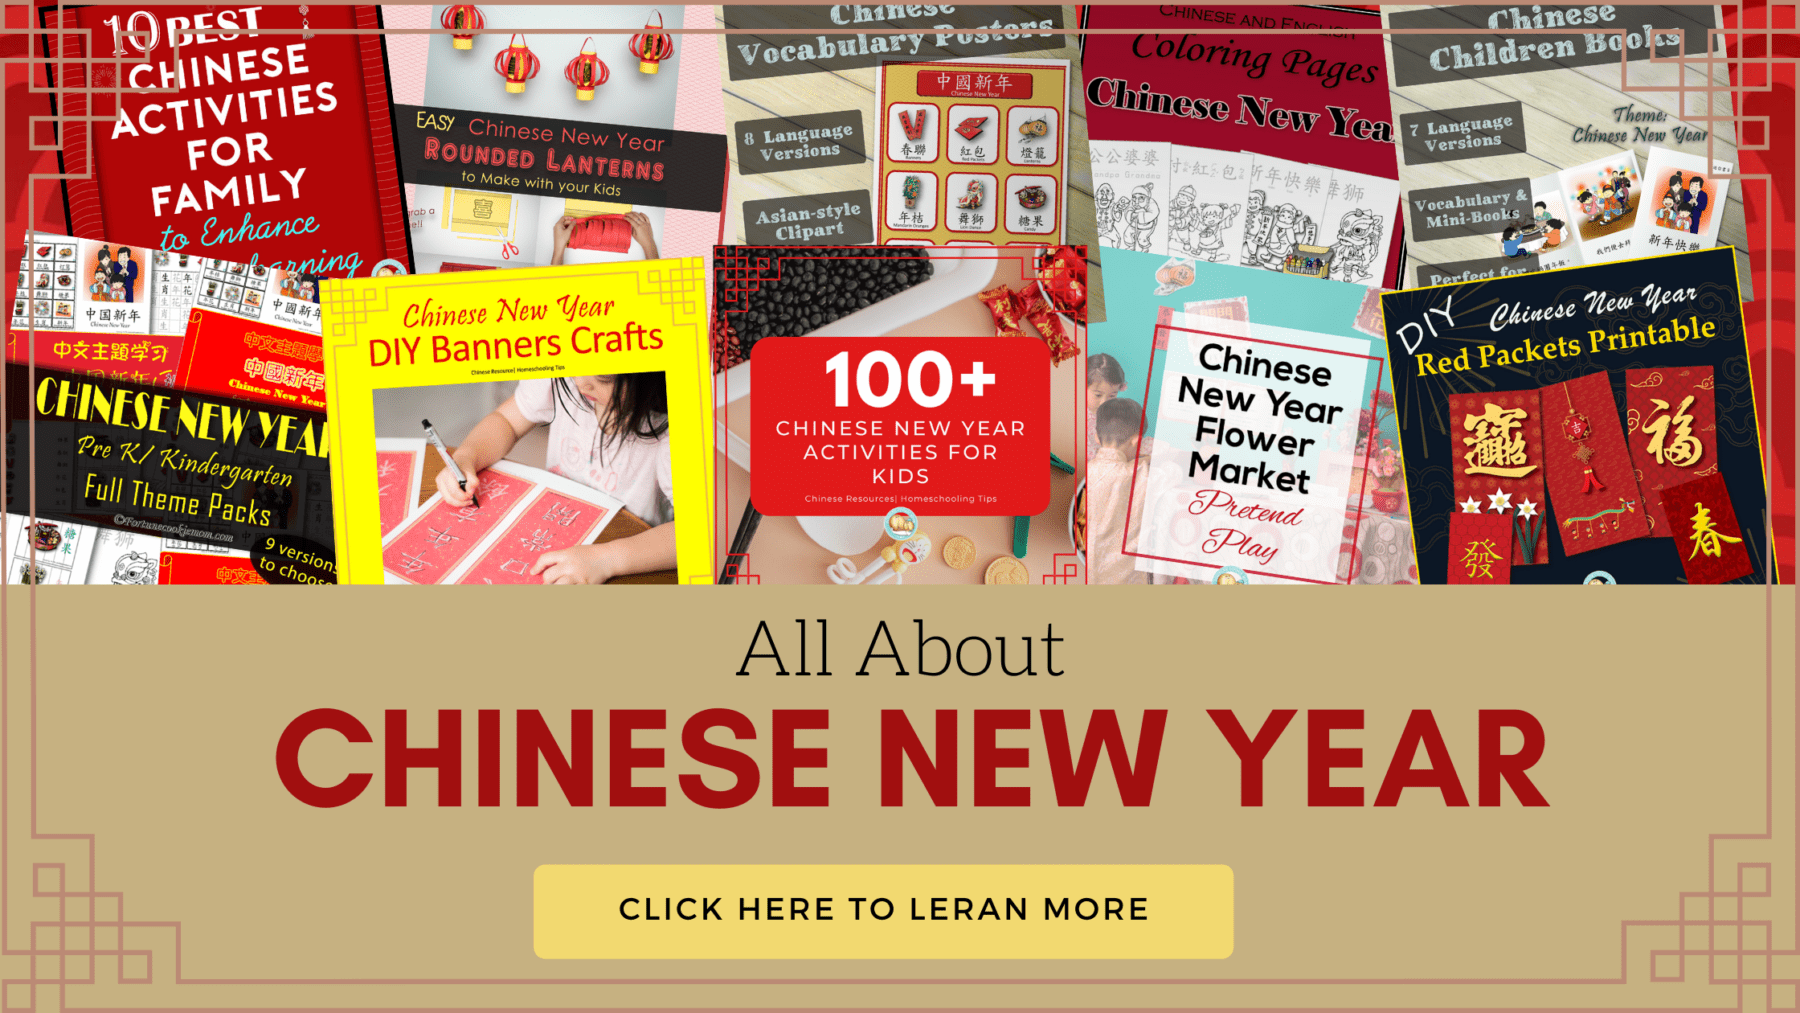 All about Chinese New Year